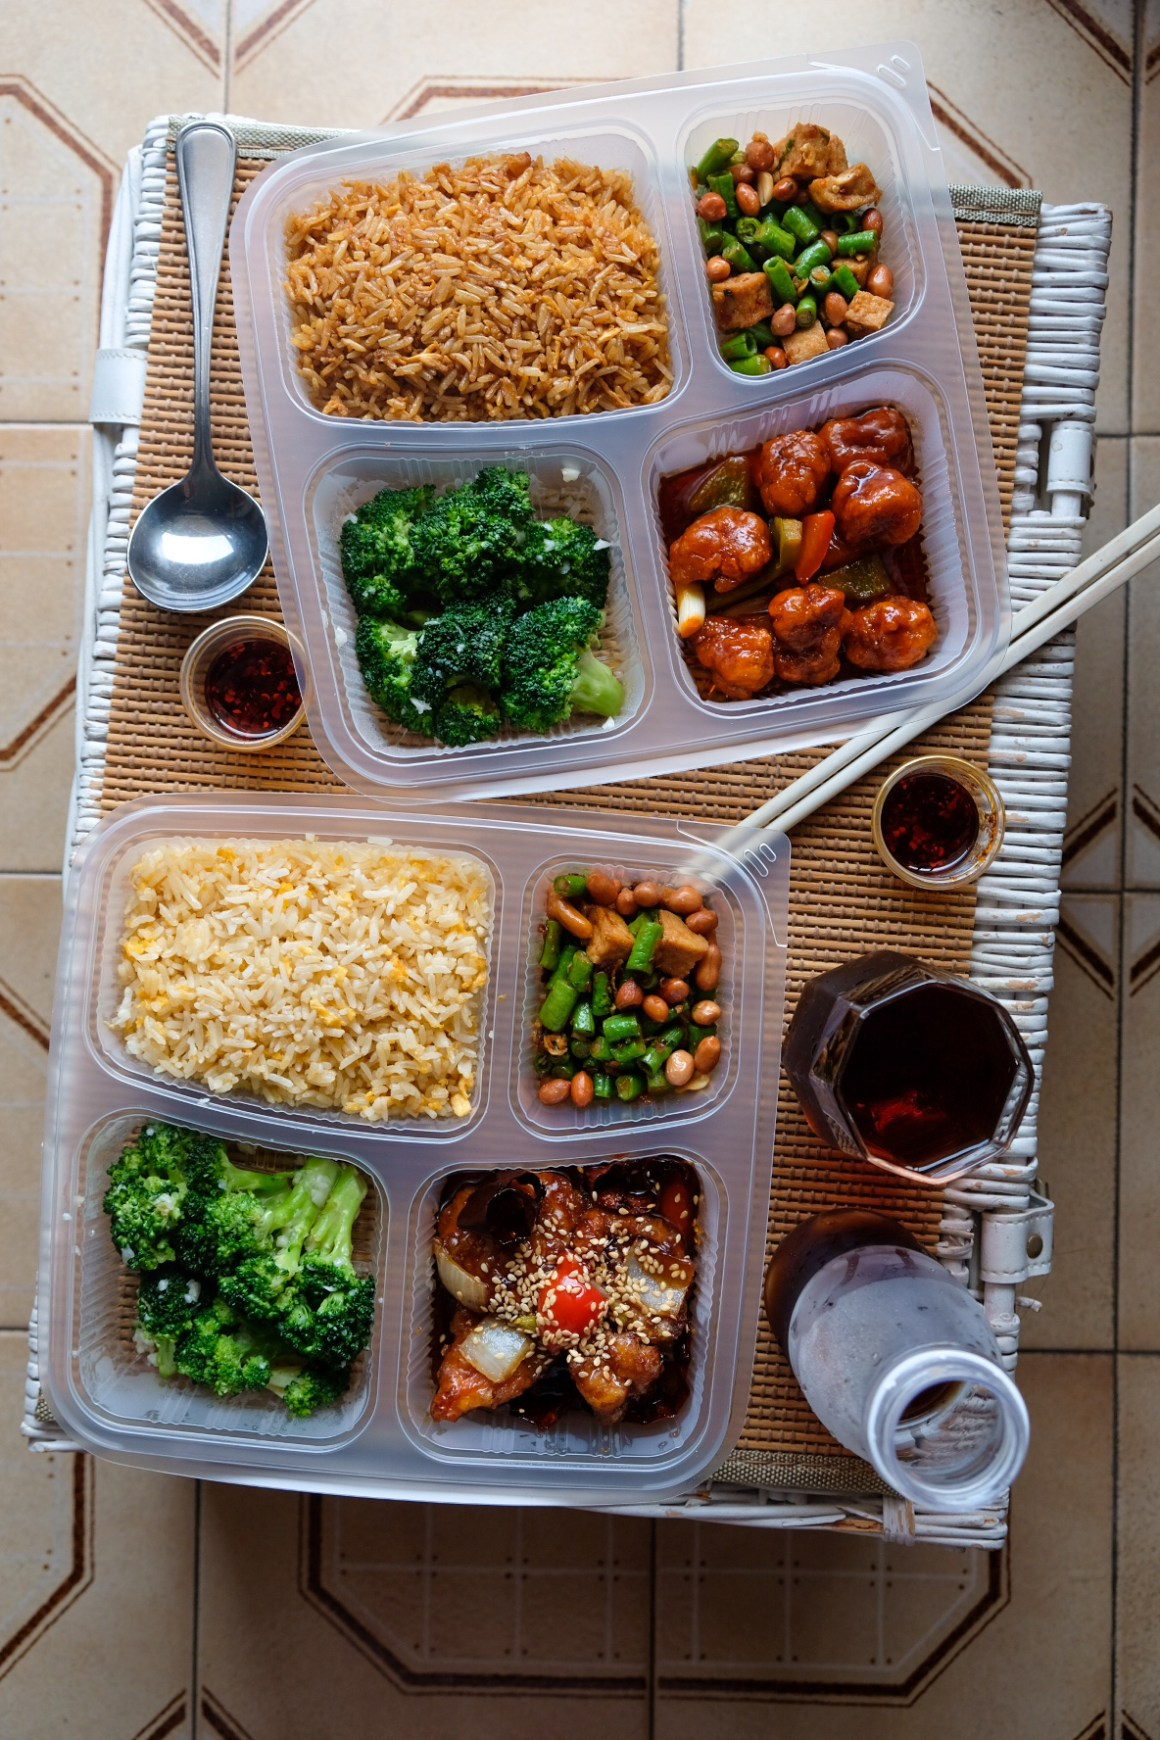 7 Best Takeaway And Delivery During Circuit Breaker - Crystal Jade Kitchen